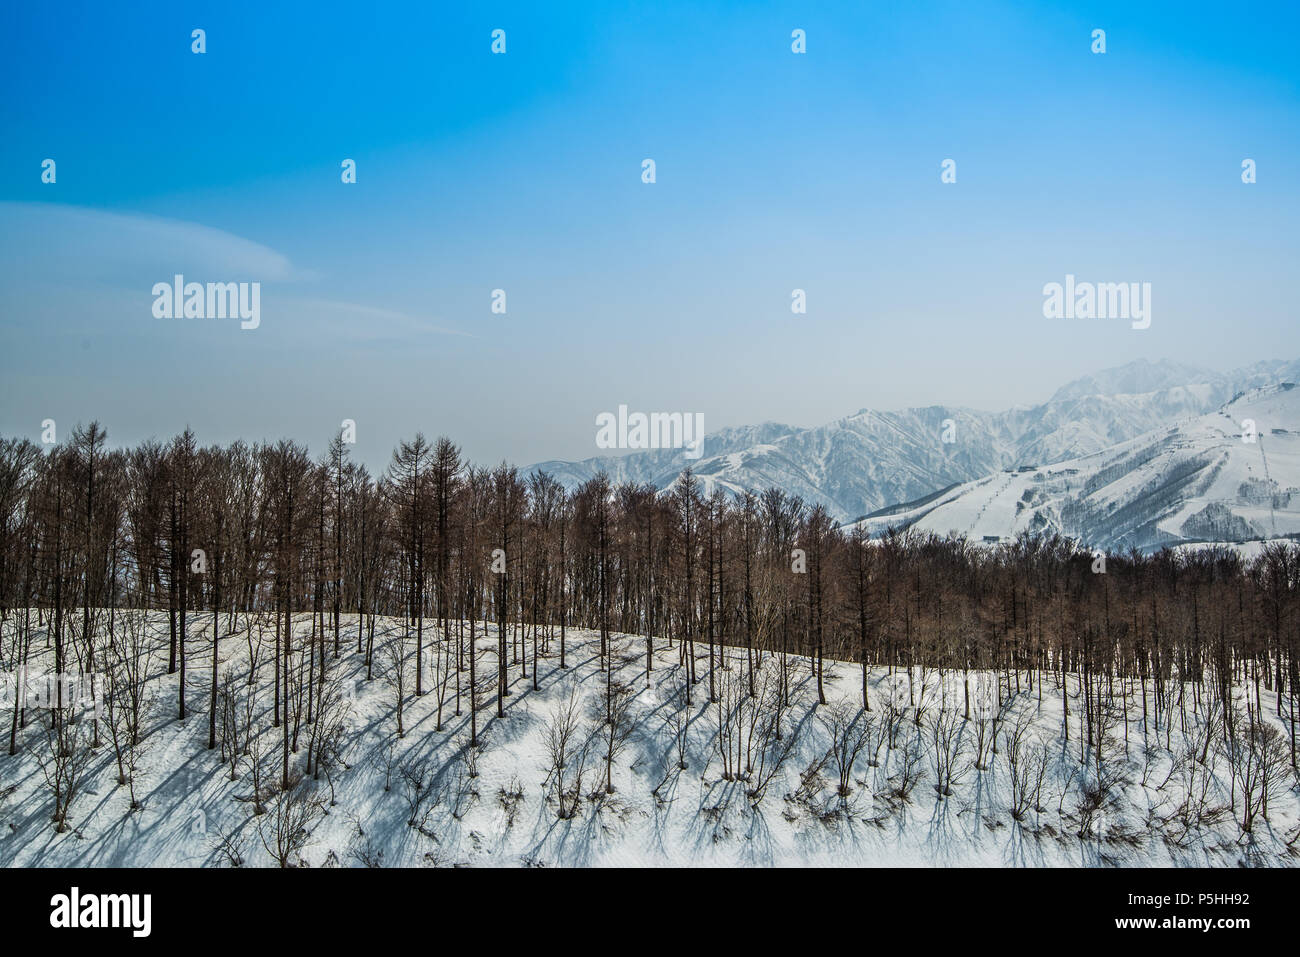 Hakuba ridge in spring. It is famous of the venue for The Nagano Winter Olympics. This area is very popular as ski resort for foreigners. - Stock Image